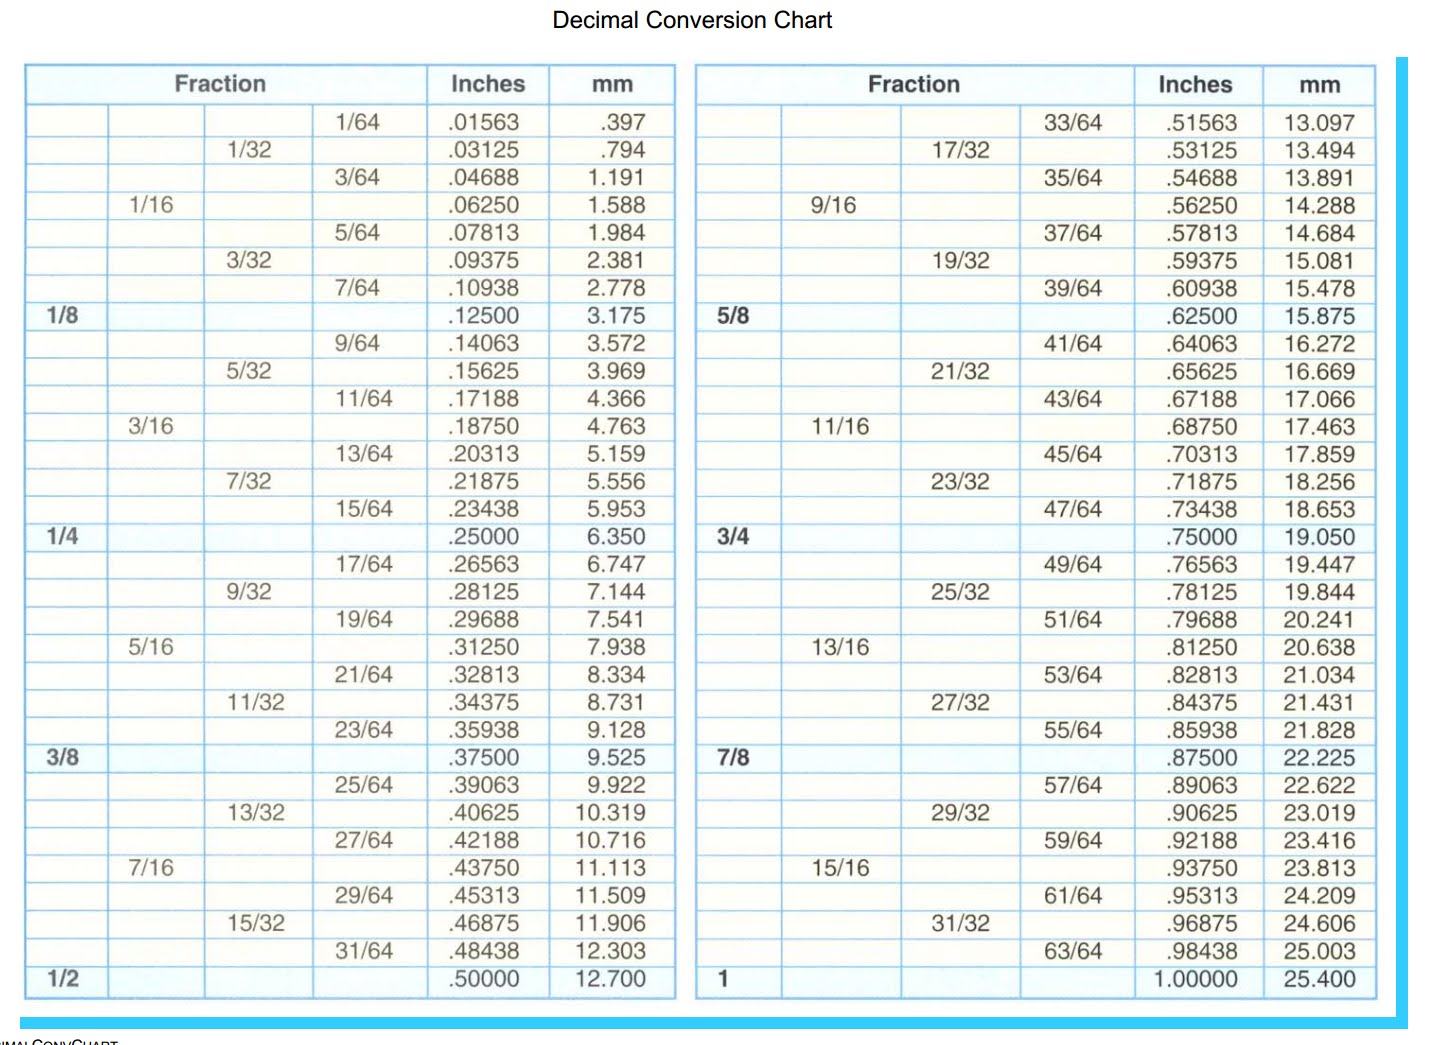 Conversion Charts Decimal To Inches Other Math Formula